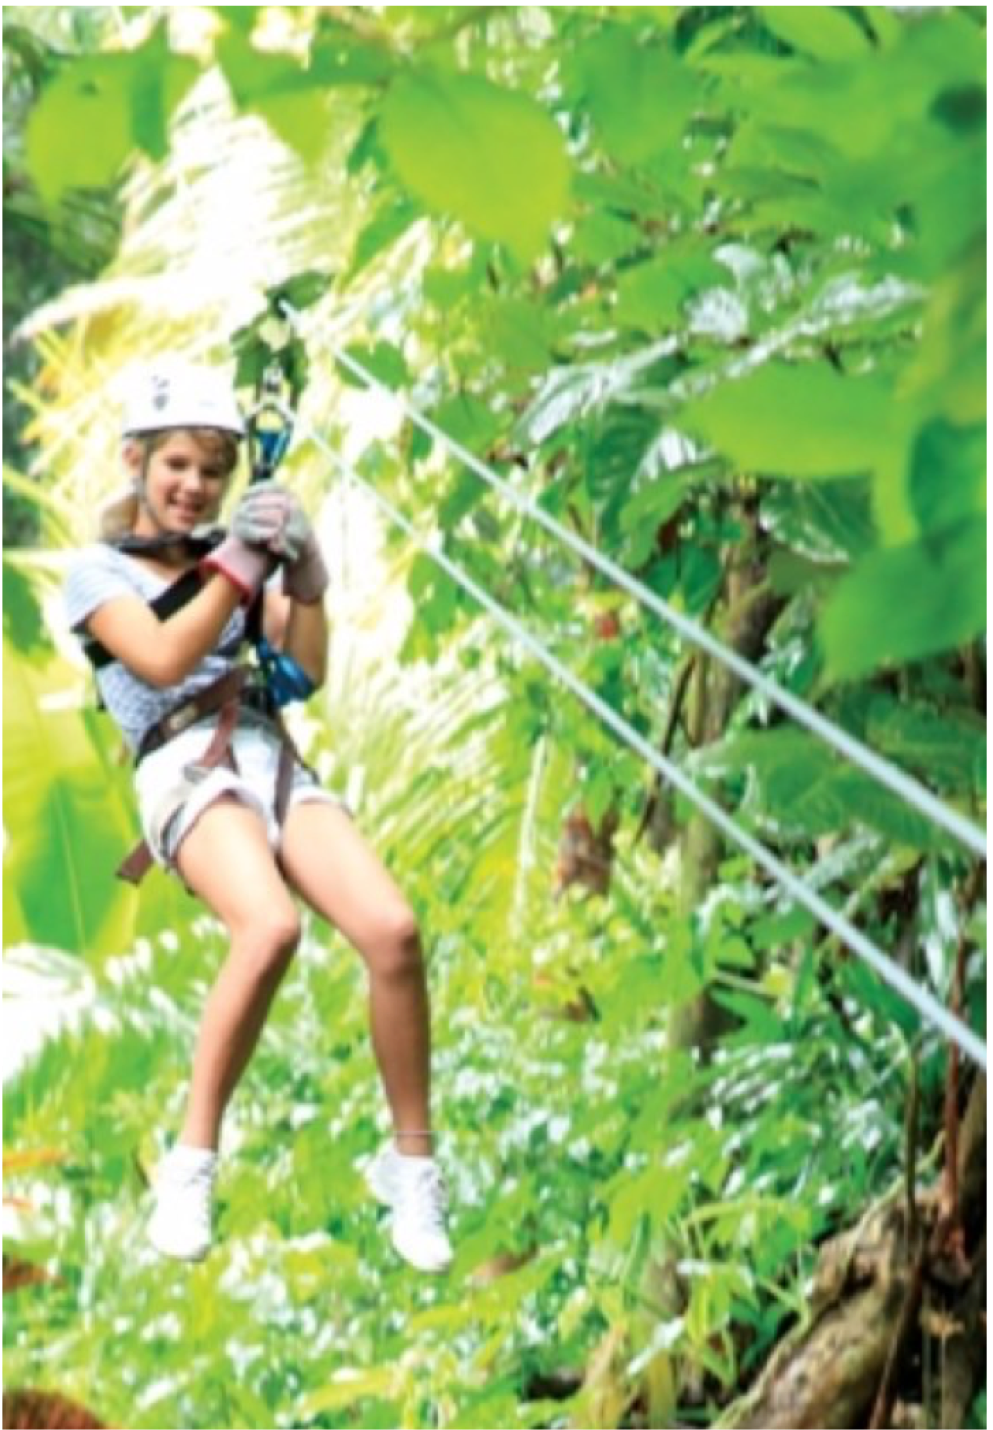 HOT WIRE RIDES IN SOUFRIERE   A more exciting take on sightseeing, this zip-line adventure is a great way to explore the island's whilst admiring some stunning views of the Petit Piton, Soufriere and the Caribbean Sea. The family-friendly tour takes you through the coffee and cocoa plantations of the Morne Coubaril Estate and its beautiful coconut, mango and plum trees, as well as its beautiful bamboo lined gorge.